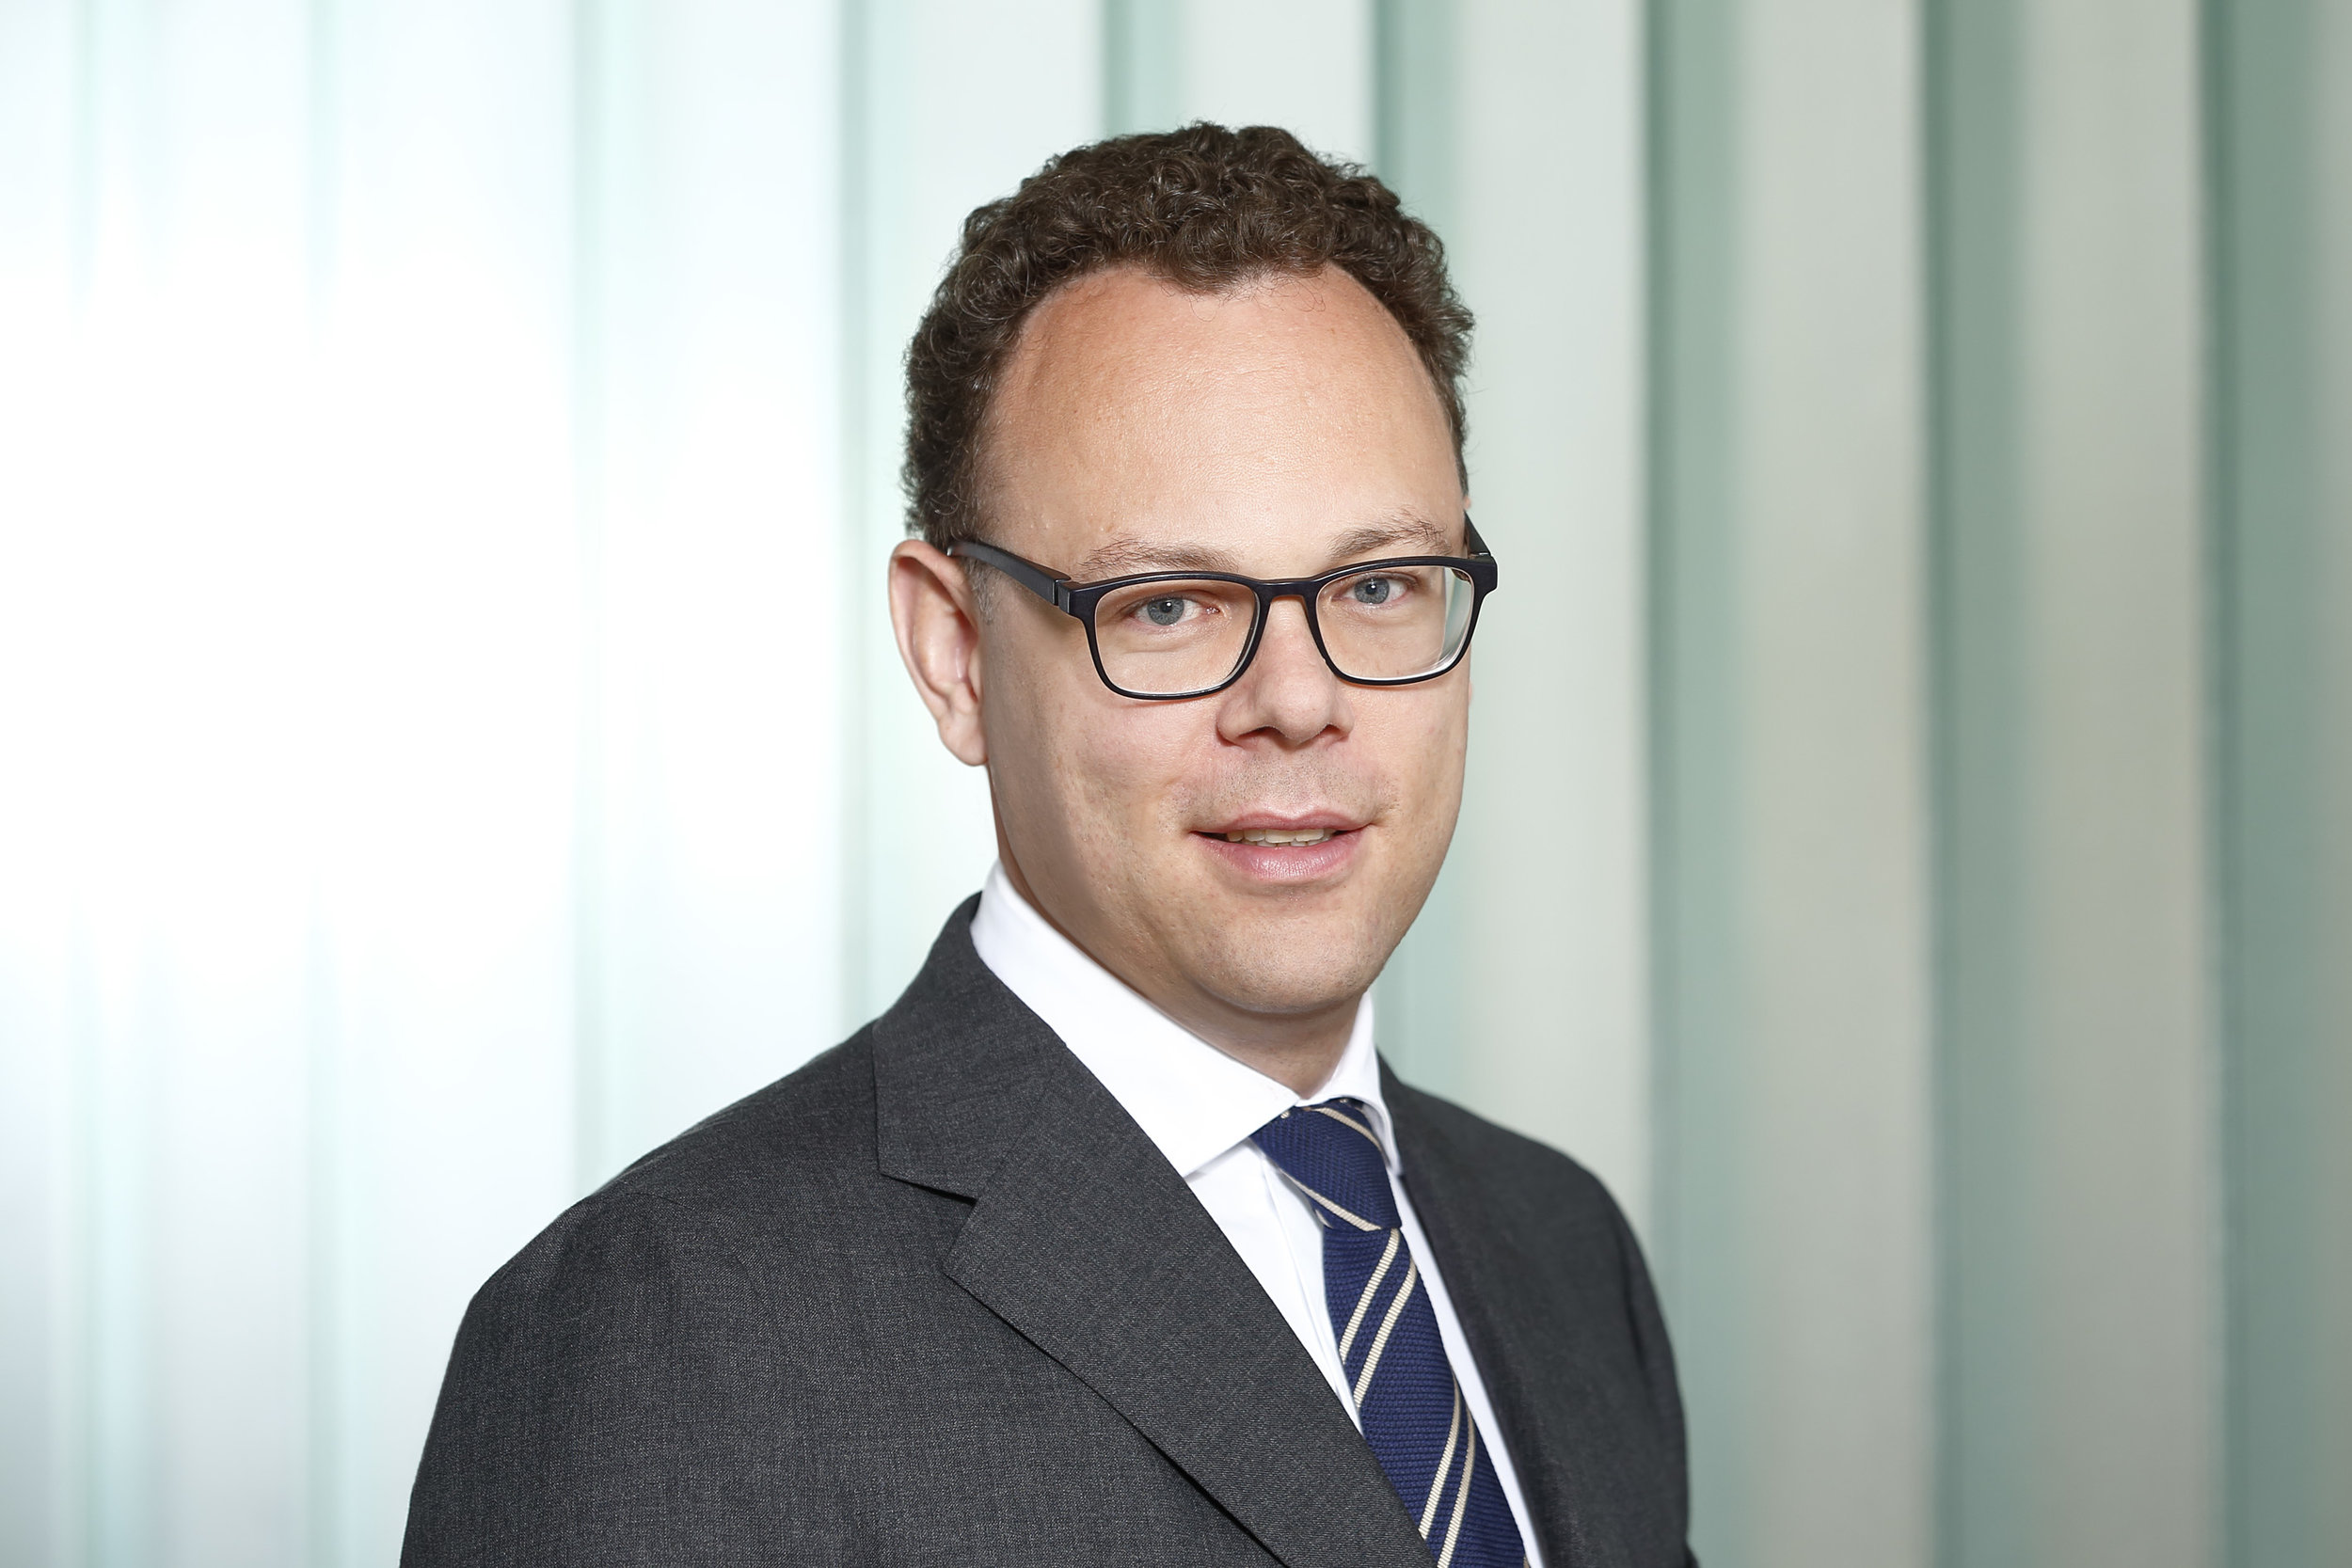 Christoph Lüders - Dr. Christoph Lüders studied business administration in St. Gallen and London and earned a doctor's degree from the University of St. Gallen (HSG). During his work for the holding of the family owned Oetker Group he did an LL.M. in Münster.In 2012 he joined the consulting business owned by his family and took over the task to extend the business consulting part. Together with his brother he is actively involved in the process of taking over the business as well as digitalizing the company.Professionally he is focused on M&A and the digitalization of business processes. Besides this he is an expert in company valuation and took the CVA exam in 2017.During his leisure time he tries to spend some hours on the water sailing in the summer and some hours on the ski run during winter times.